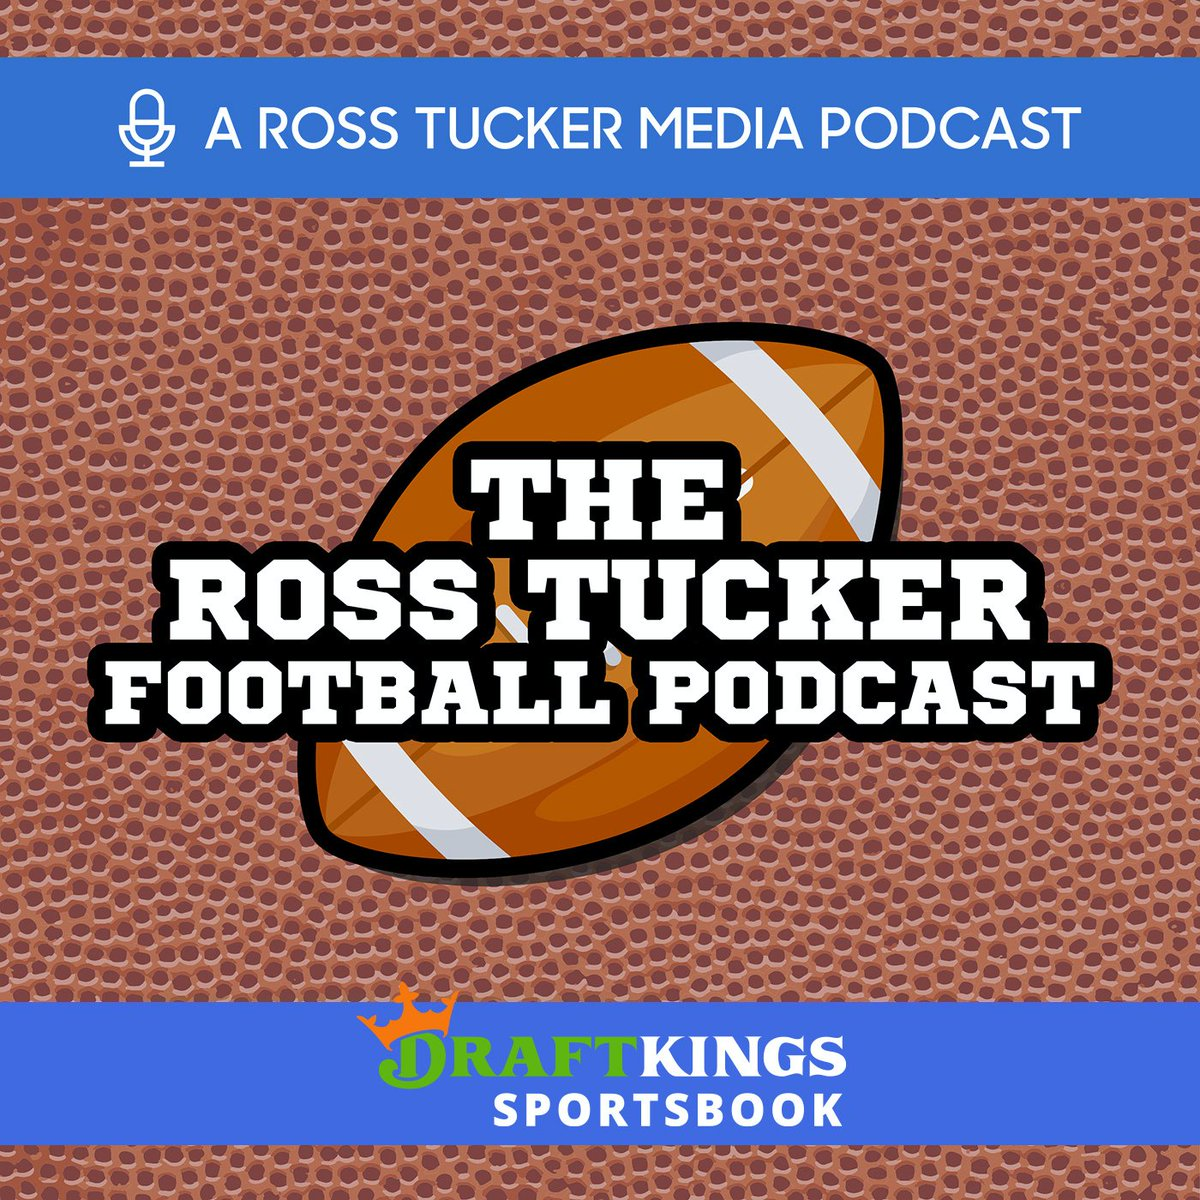 Check out today's pod to learn everything you need to know (from a business of sports angle) of the #titans positive COVID tests.  @RossTuckerNFL @AndrewBrandt   https://t.co/mjrb0qYgie https://t.co/mdiI7PRQ9r